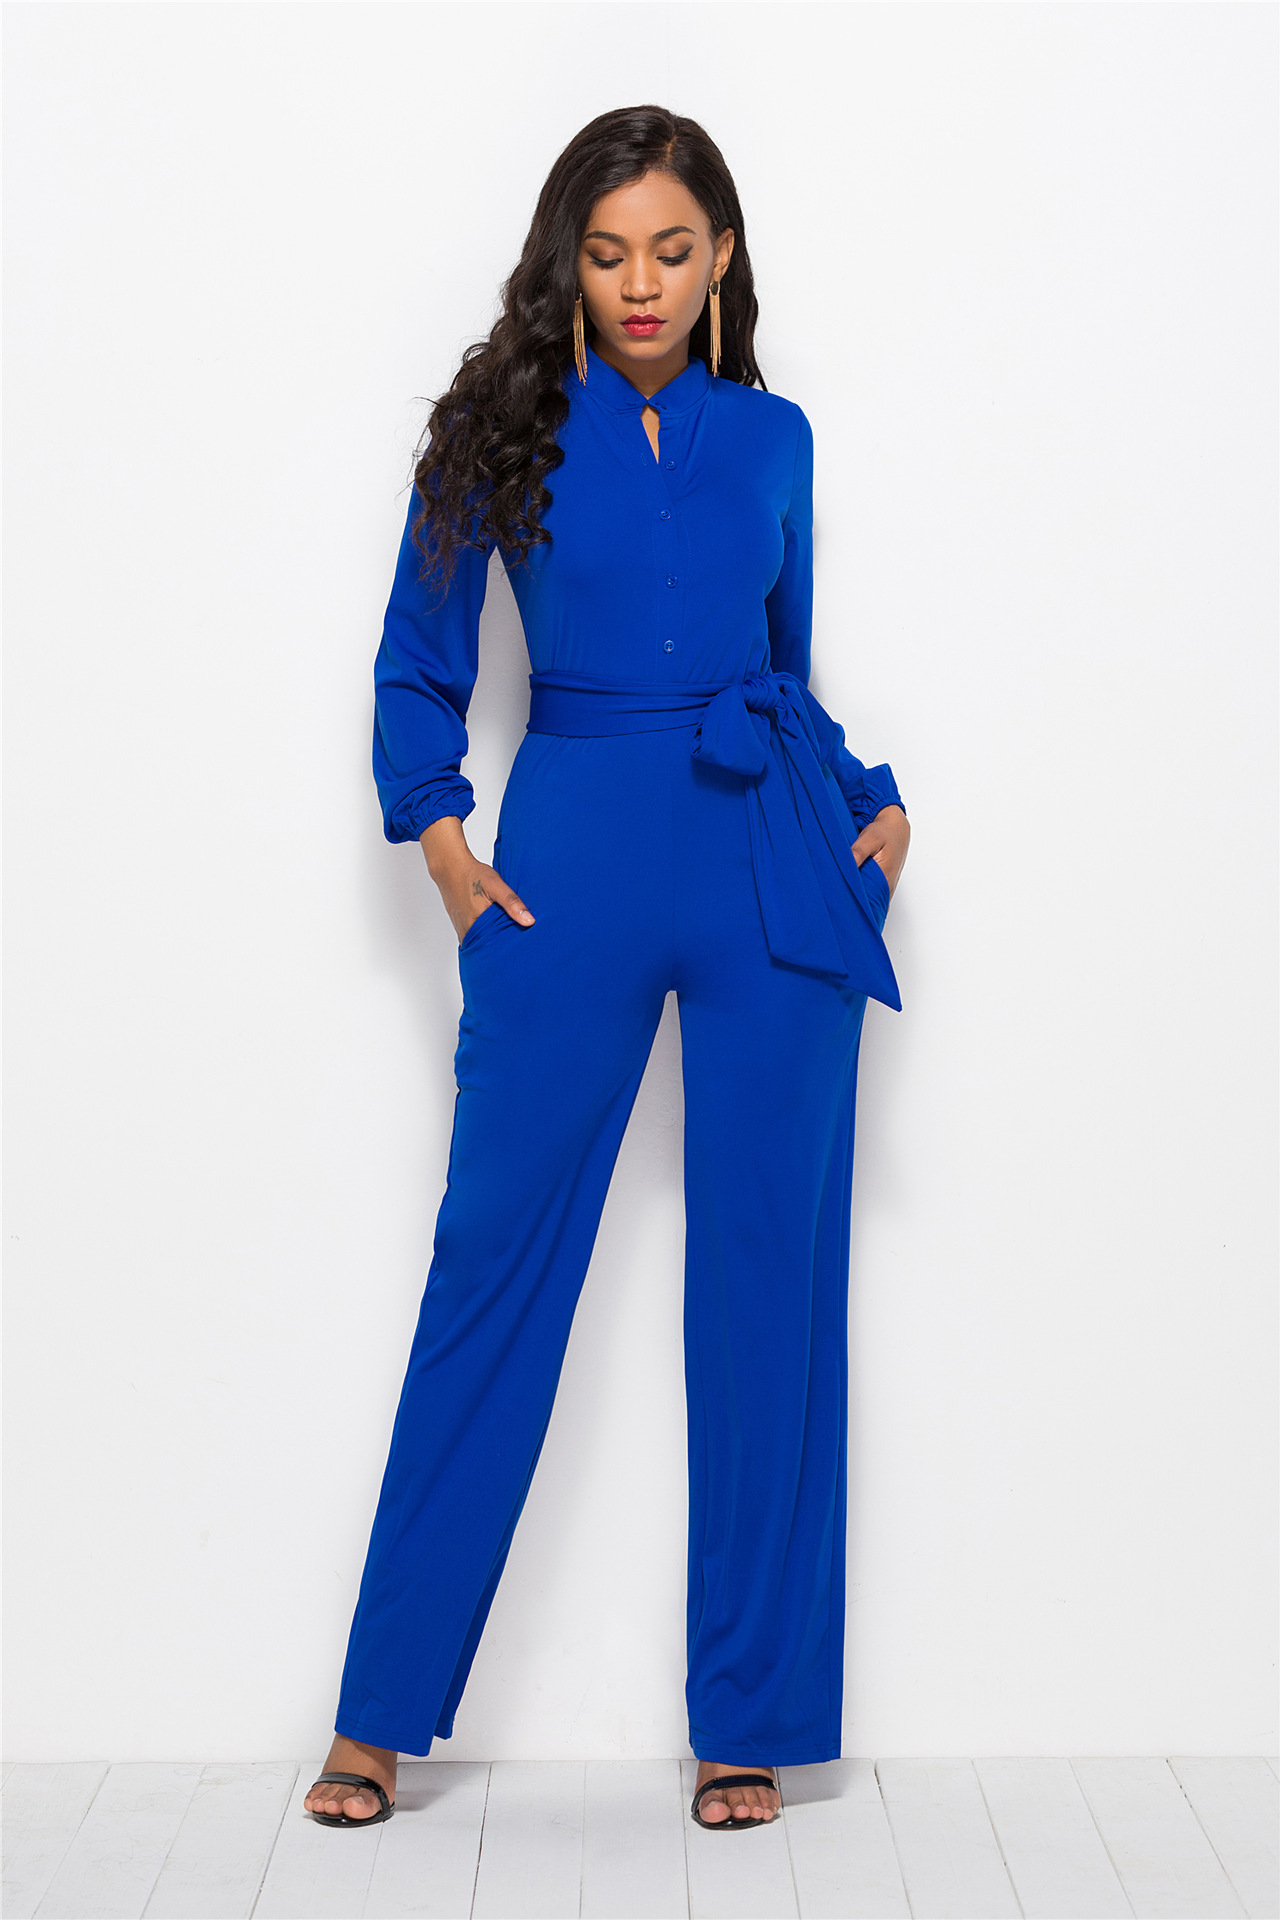 Women Wide Leg Jumpsuit Buttons Long Sleeve Streetwear Casual Loose Romper Overalls royal blue